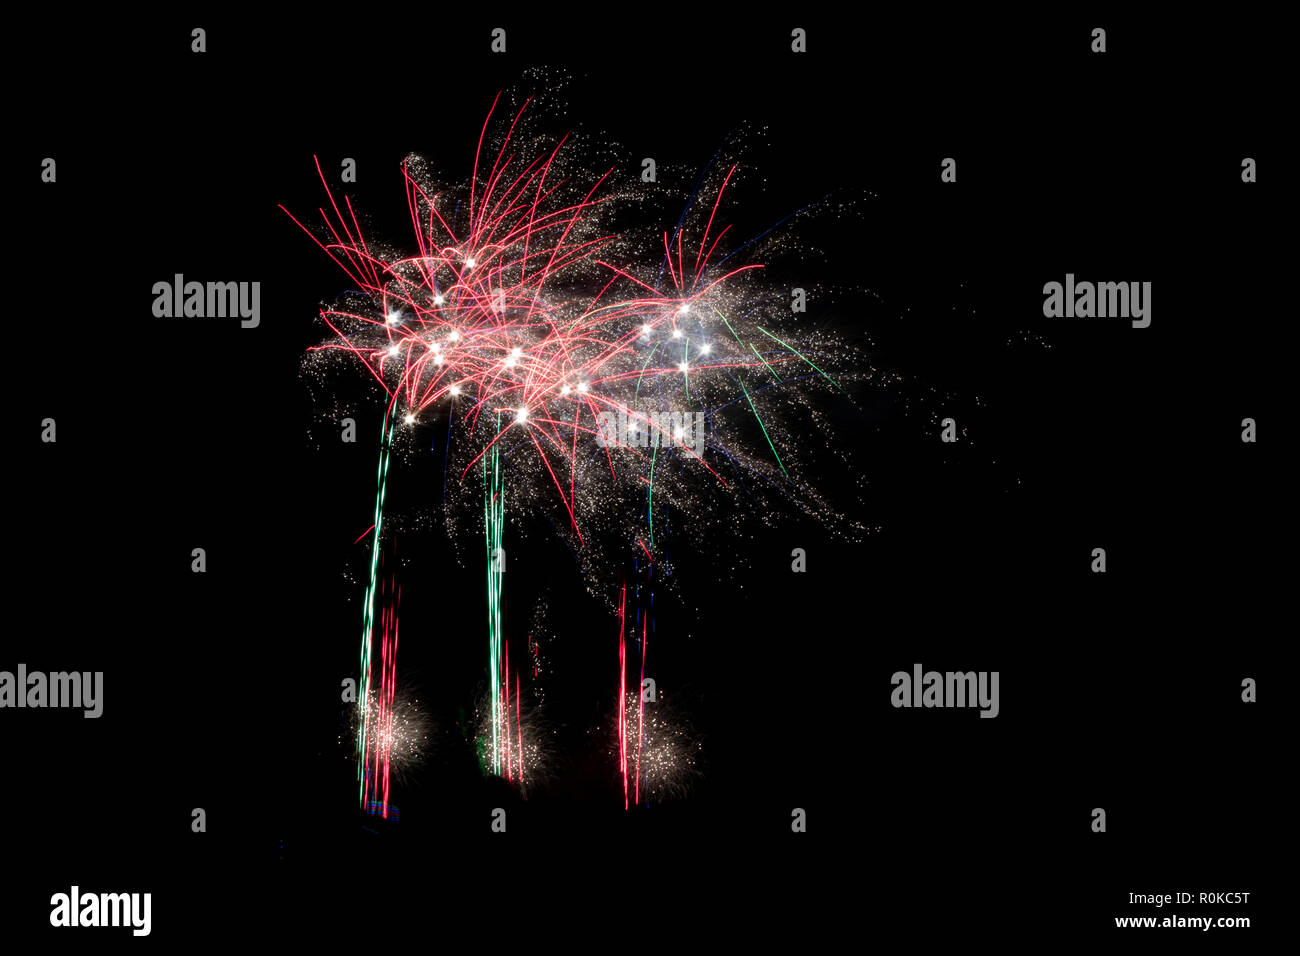 Bolton, England, UK - November 2, 2018: Another star sparkling success for Bolton's Annual Big Fireworks night at Leverhulme Park. - Stock Image